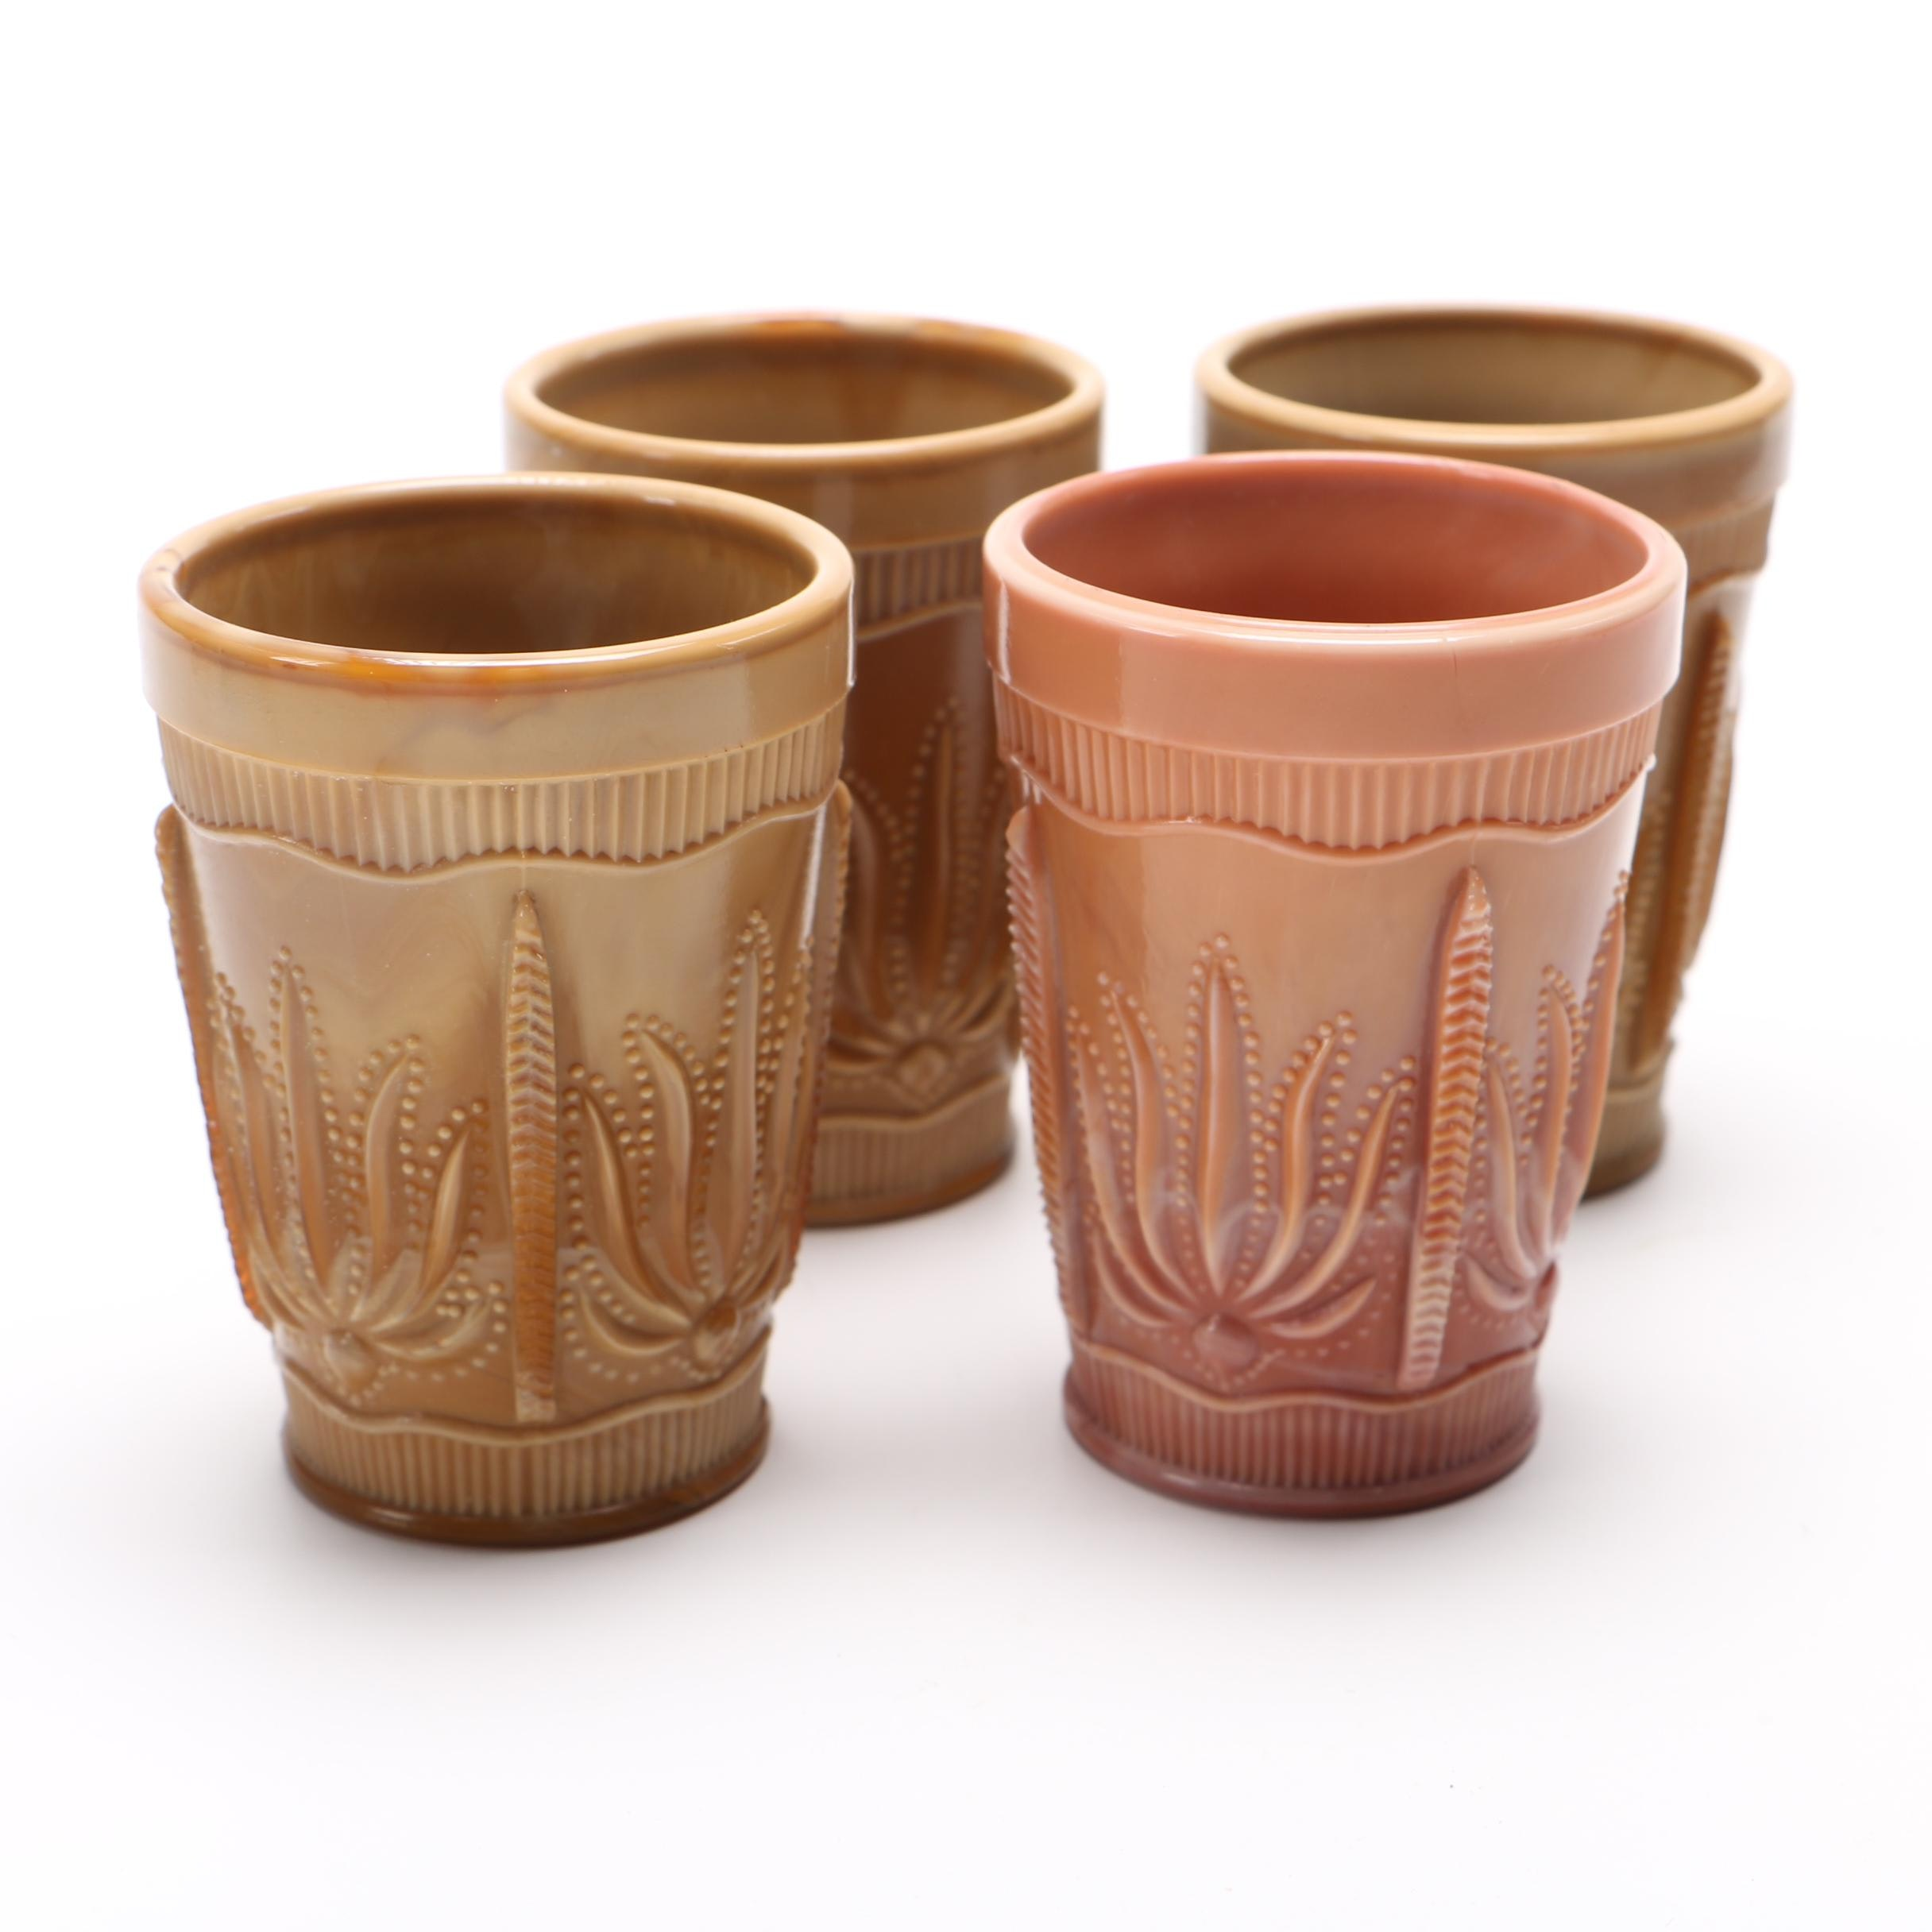 Cactus Chocolate Tumblers From Greentown Glass